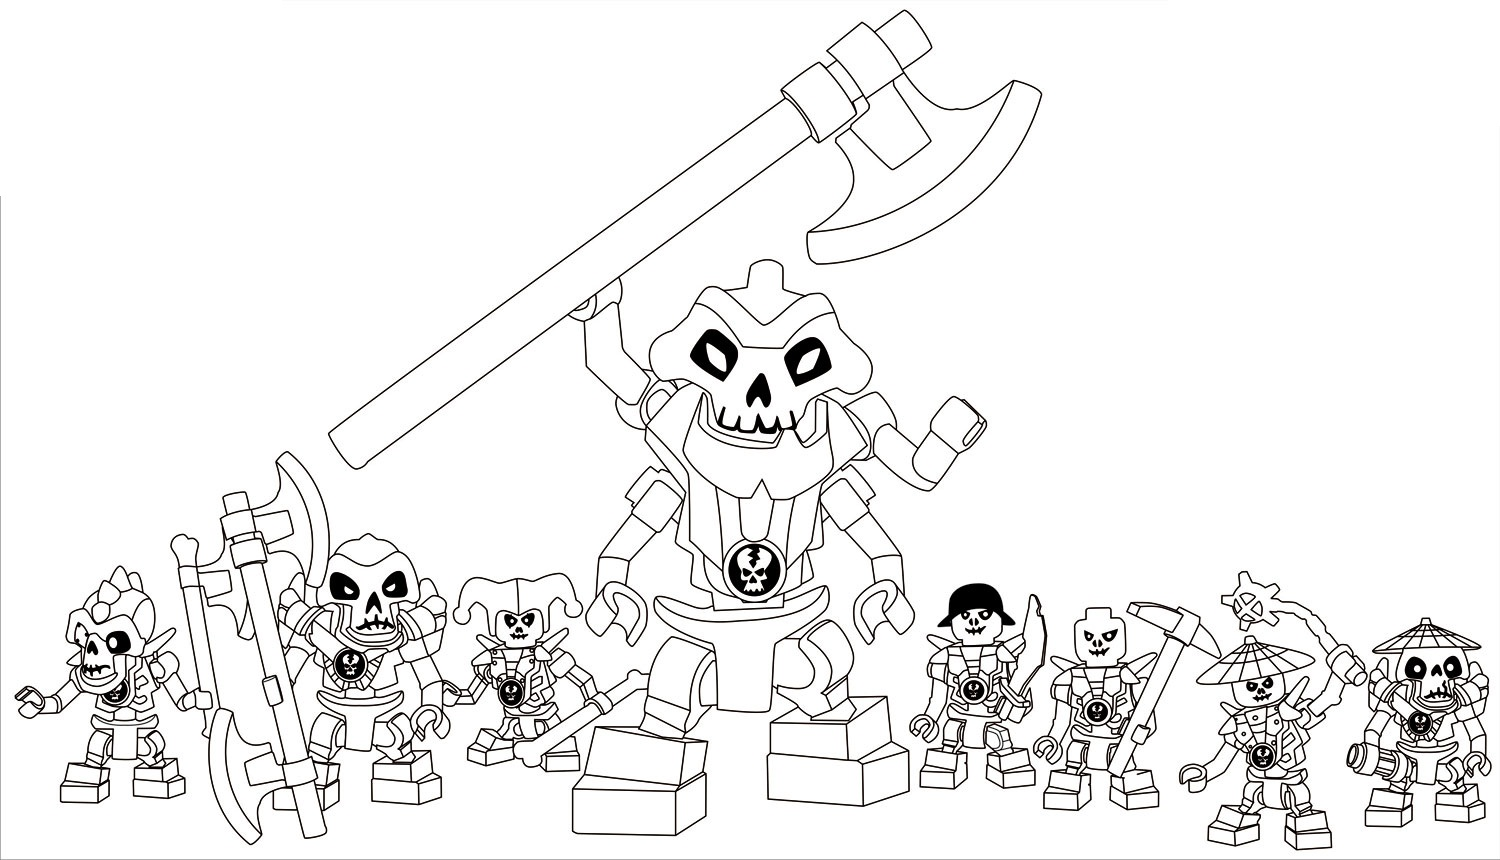 Cole ninjago coloring games online for kids - Free Lego Ninjago Coloring Pages